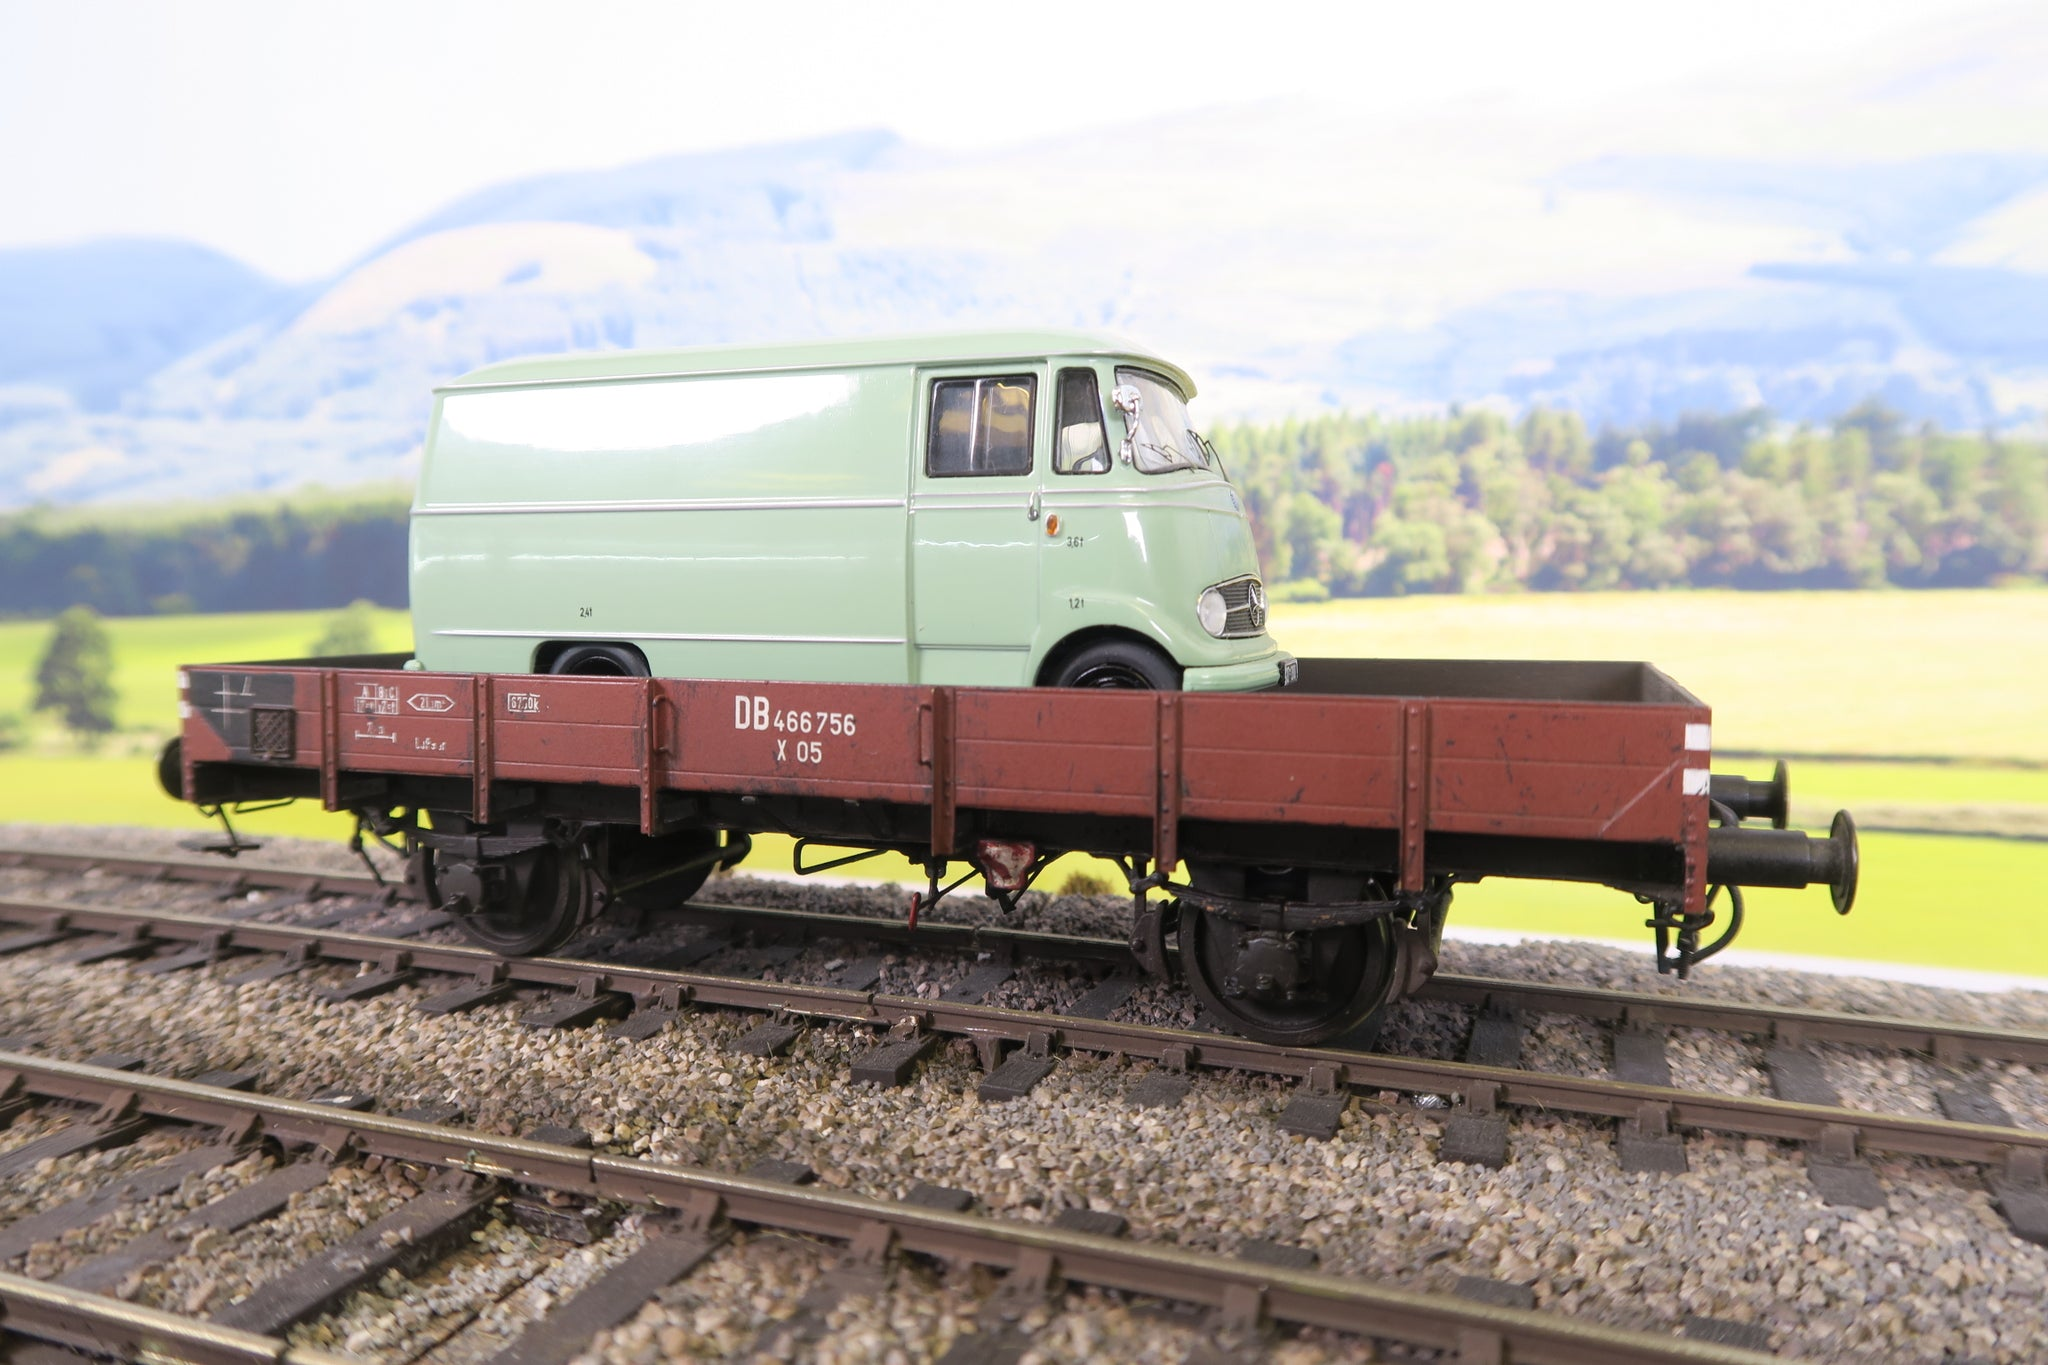 ARGE (or Similar) O Gauge DB Lowsided Wagon '466756' with Mercedes Van as Load